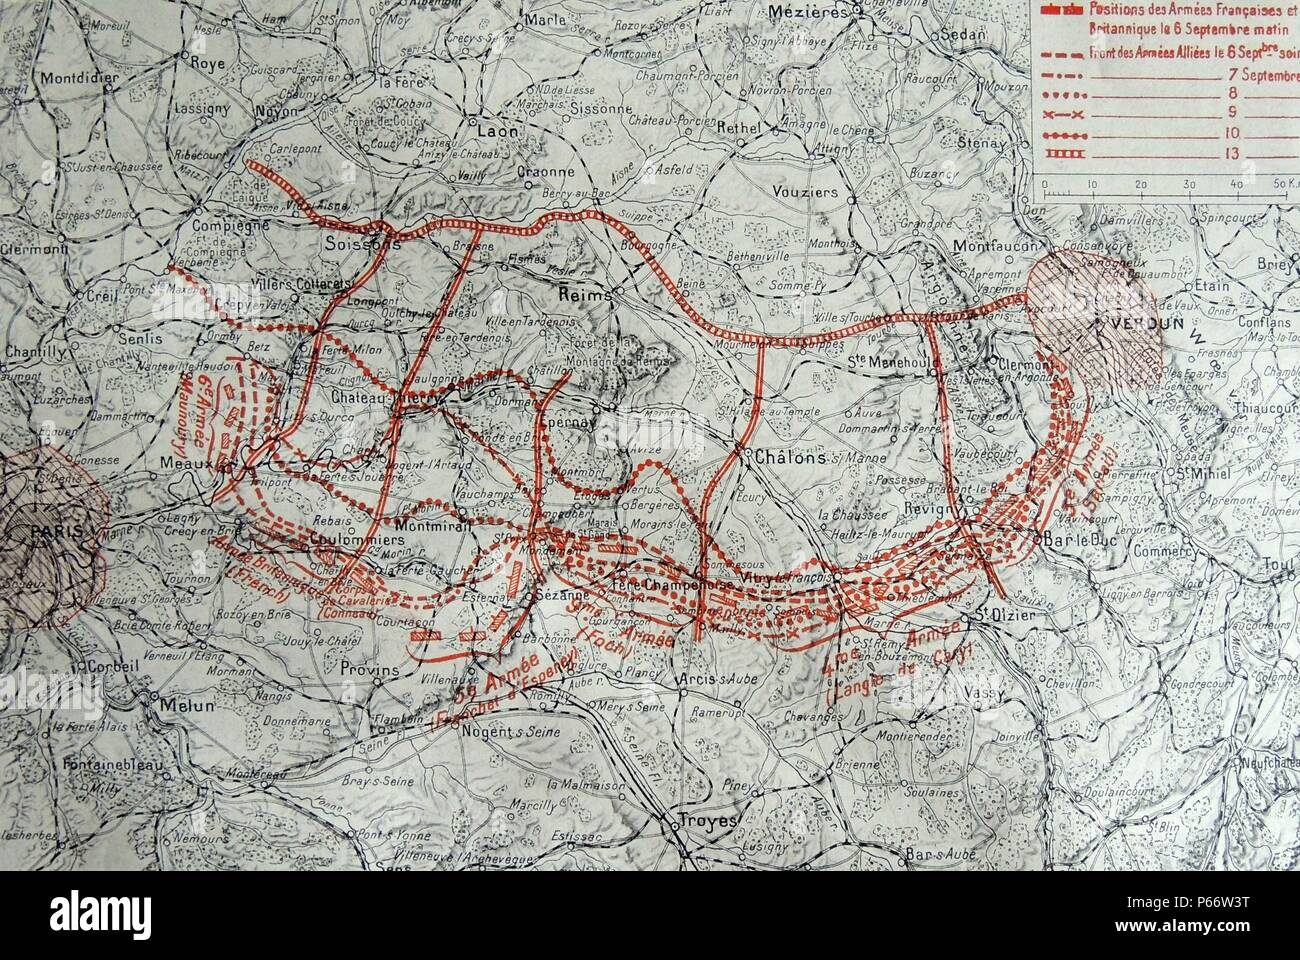 Map showing the progressive positions the French and British forces at the First Battle of the Marne was conducted between 6-12 September 1914. The outcome bringing to an end the war of movement that had dominated the First World War since the beginning of August. Instead, with the German advance brought to a halt, stalemate and trench warfare ensued. Stock Photo